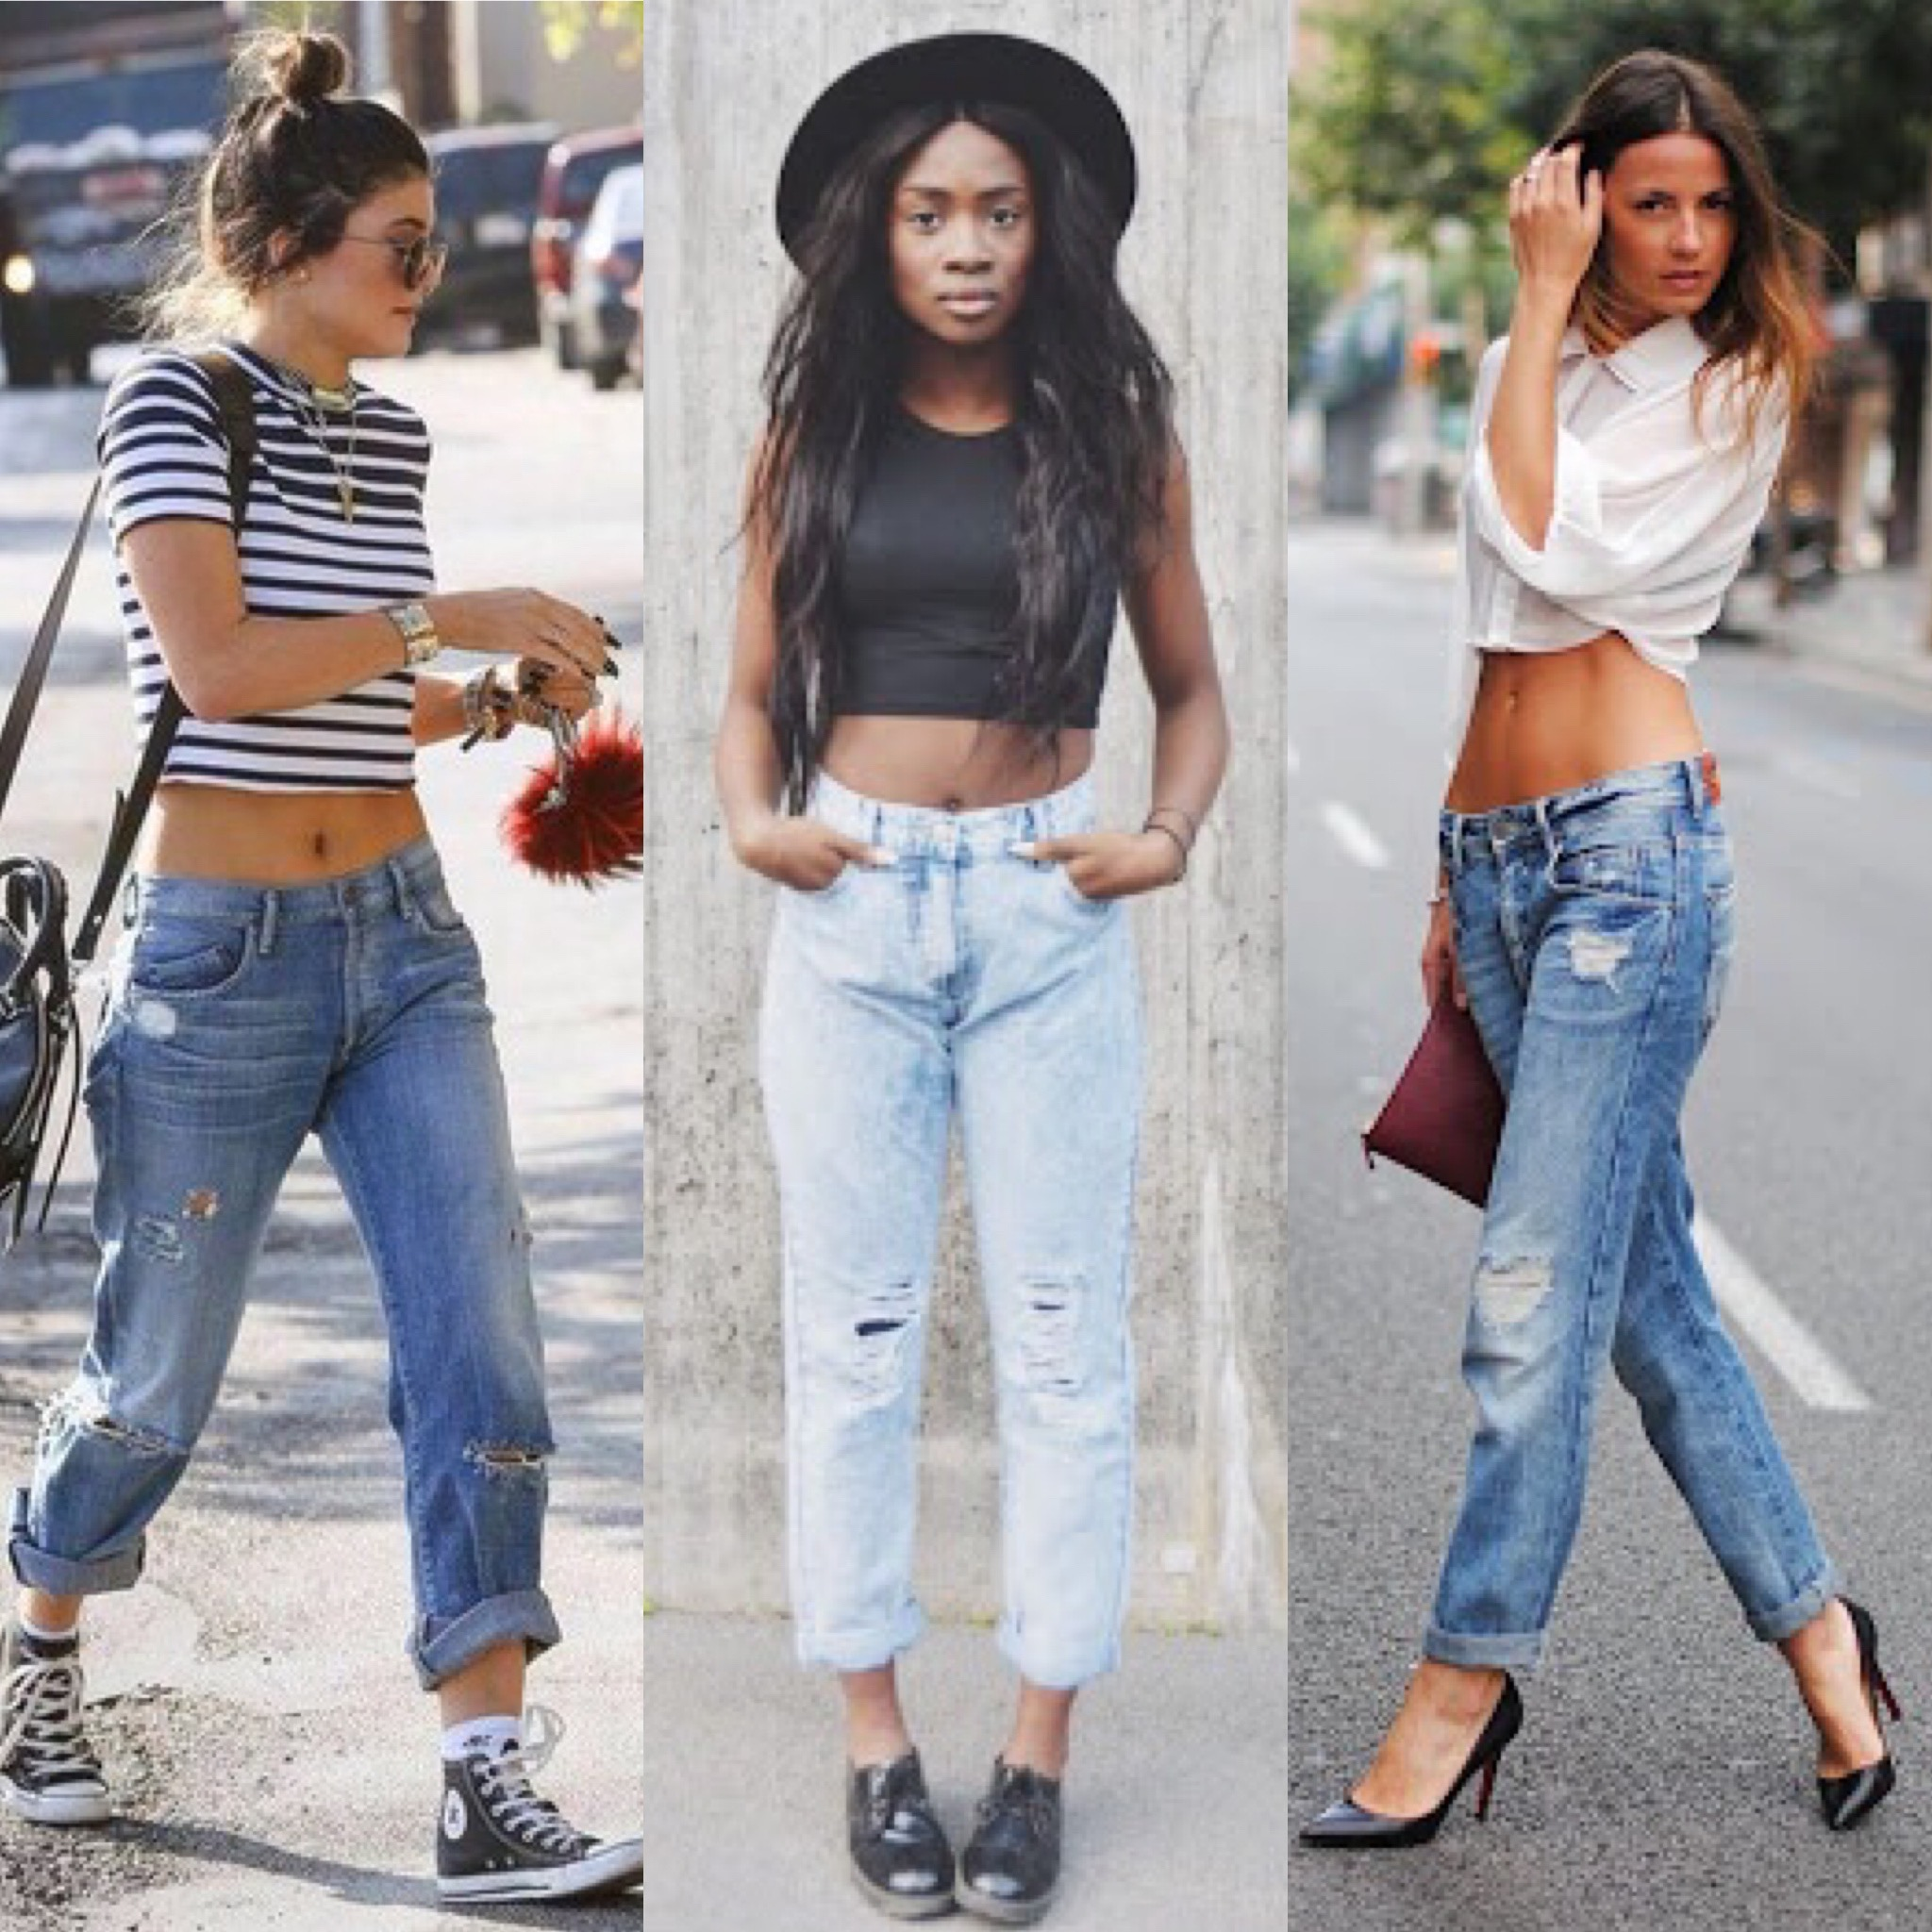 Boyfriend jeans outfit with a crop top